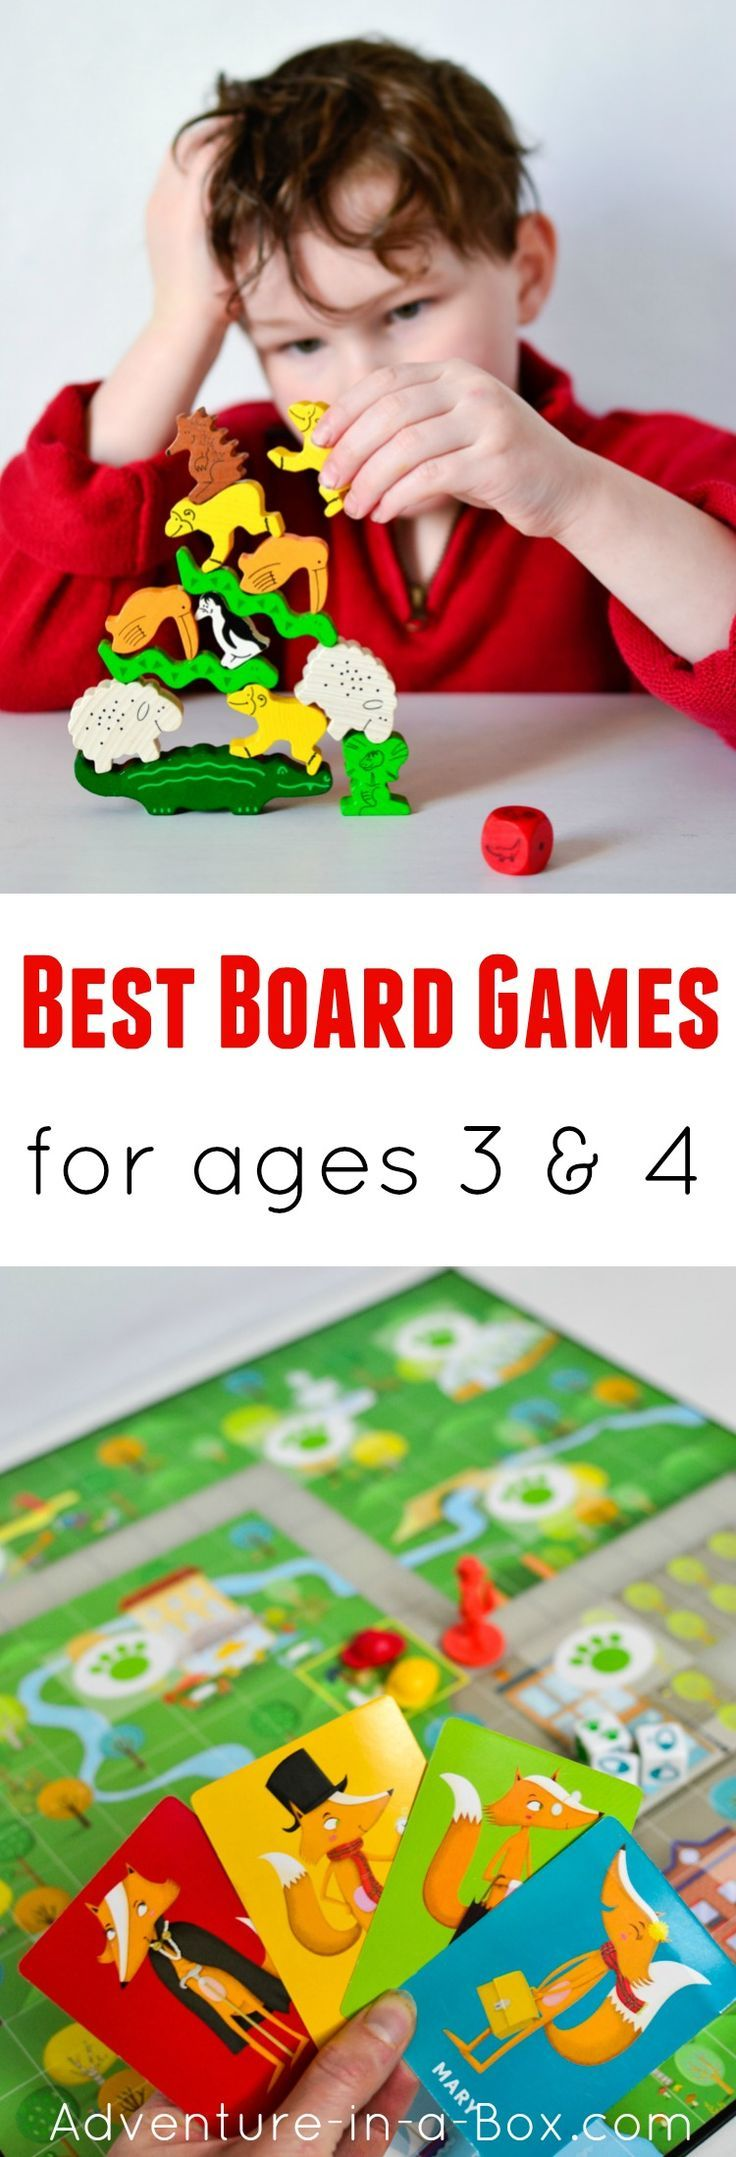 Do you like playing board games and wonder which are the best games for preschoolers - that adults will like too? Here is the list of our favourite games to play as a family with three- and four-year-olds. #kidsactivities #familyfun #homeschooling #preschool #homeschool